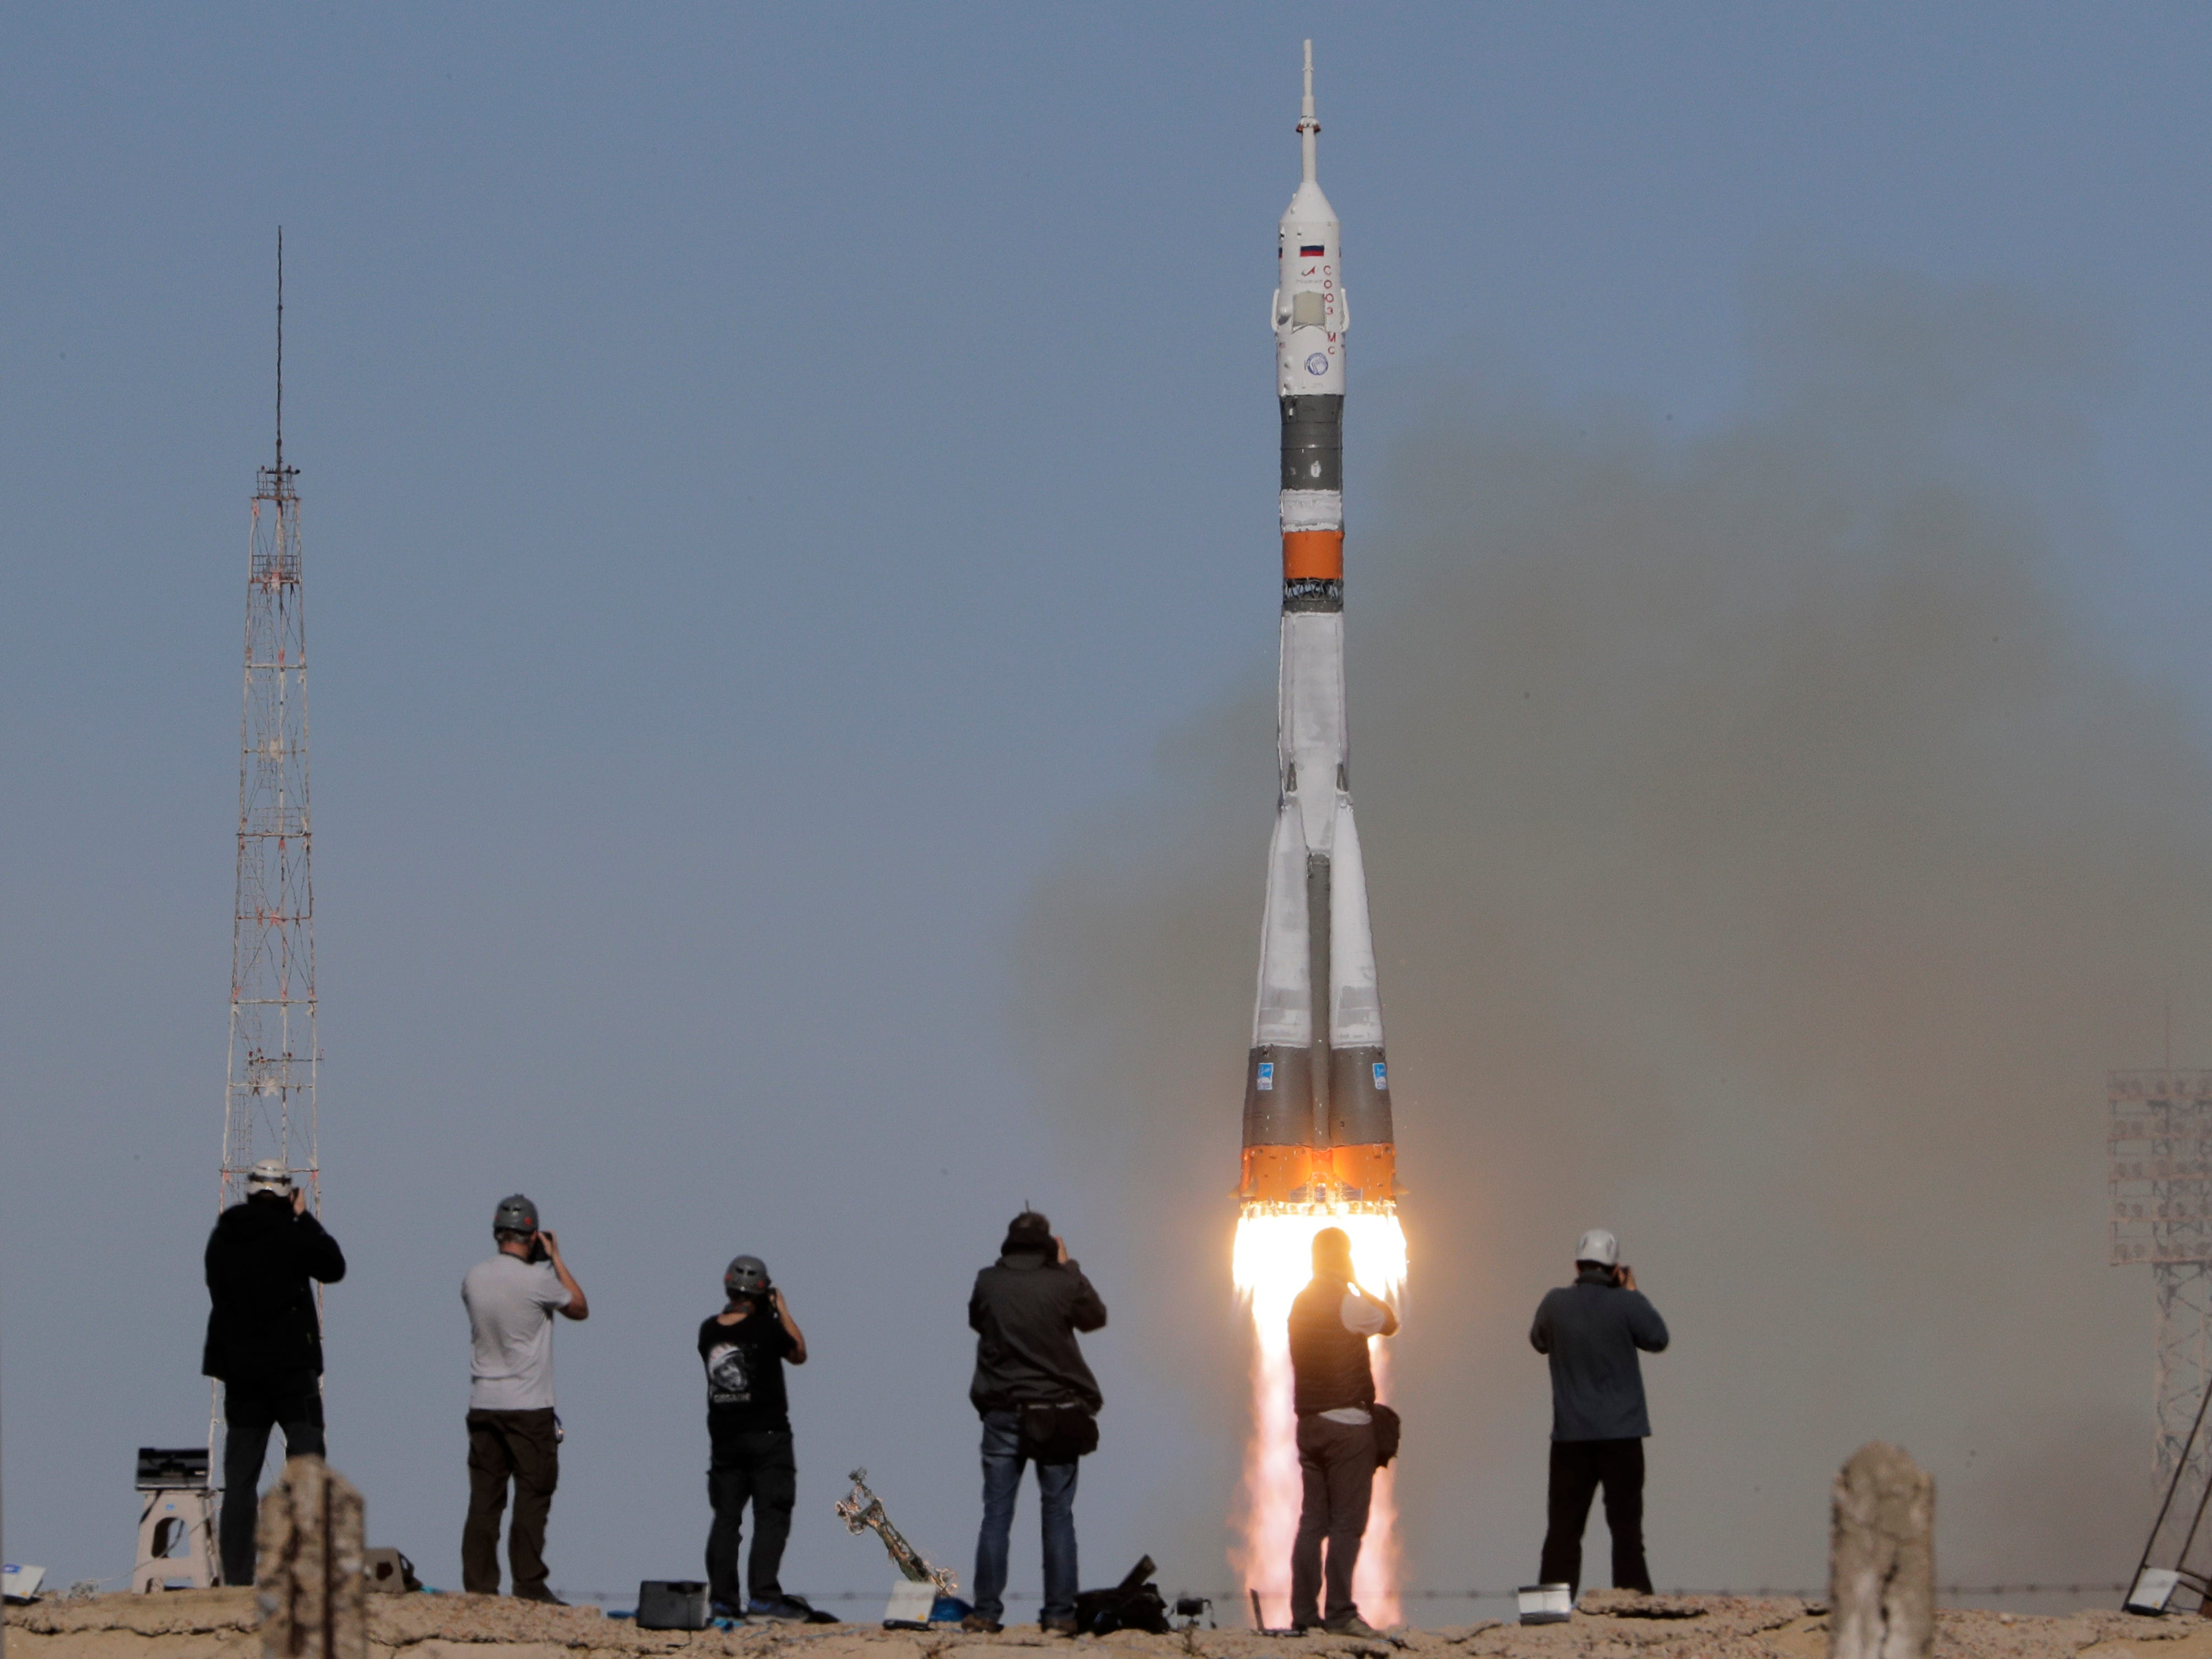 The Soyuz-FG rocket booster with Soyuz MS-10 space ship carrying a new crew to the International Space Station, ISS, blasts off at the Russian leased Baikonur cosmodrome, Kazakhstan, Thursday, Oct. 11, 2018. The Russian rocket carries U.S. astronaut Nick Hague and Russian cosmonaut Alexey Ovchinin. The two astronauts are making an emergency landing after a Russian booster rocket carrying them into orbit to the International Space Station has failed after launch. (AP Photo/Dmitri Lovetsky) ORG XMIT: XDL147